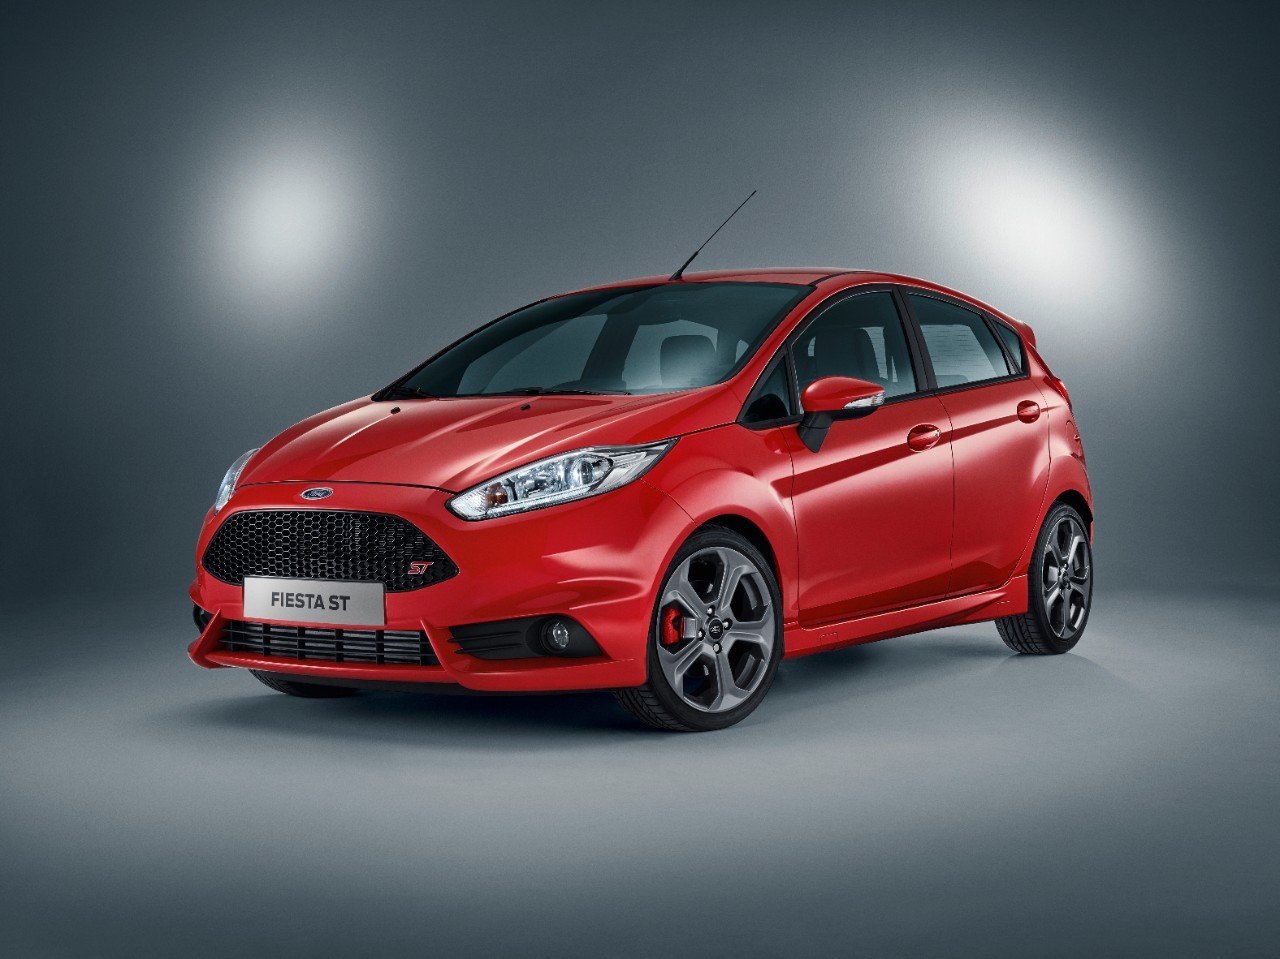 five-door Ford Fiesta ST